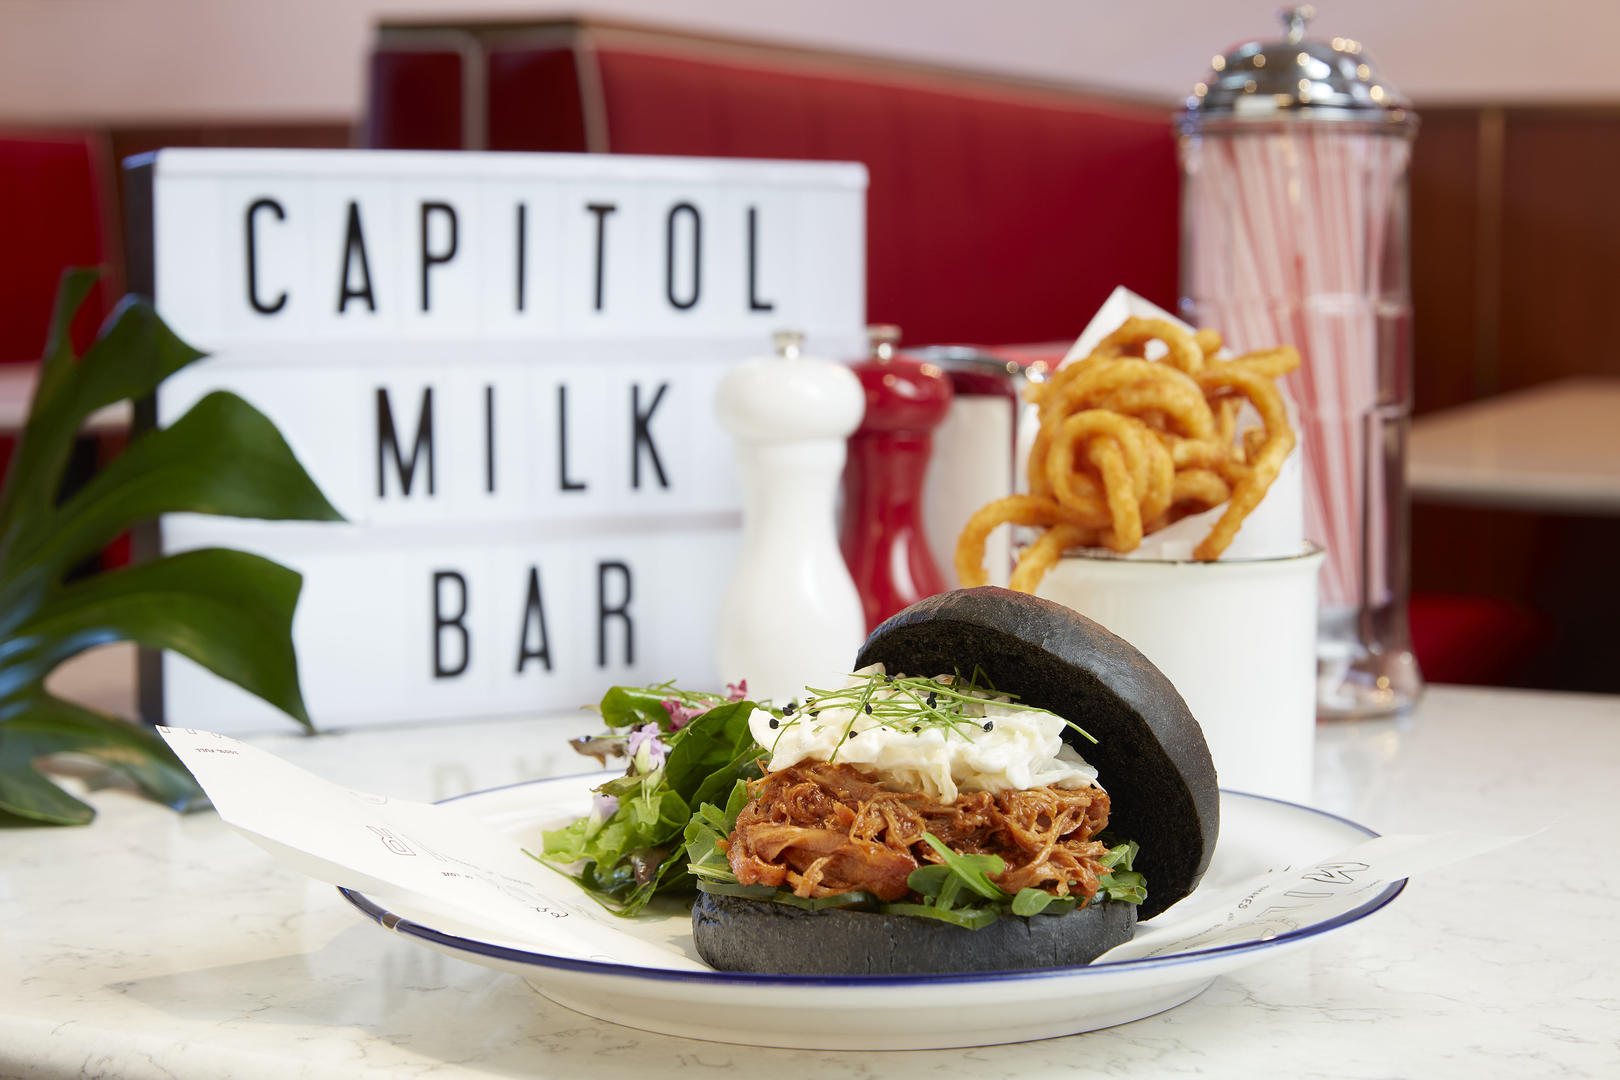 Capitol Milk Bar